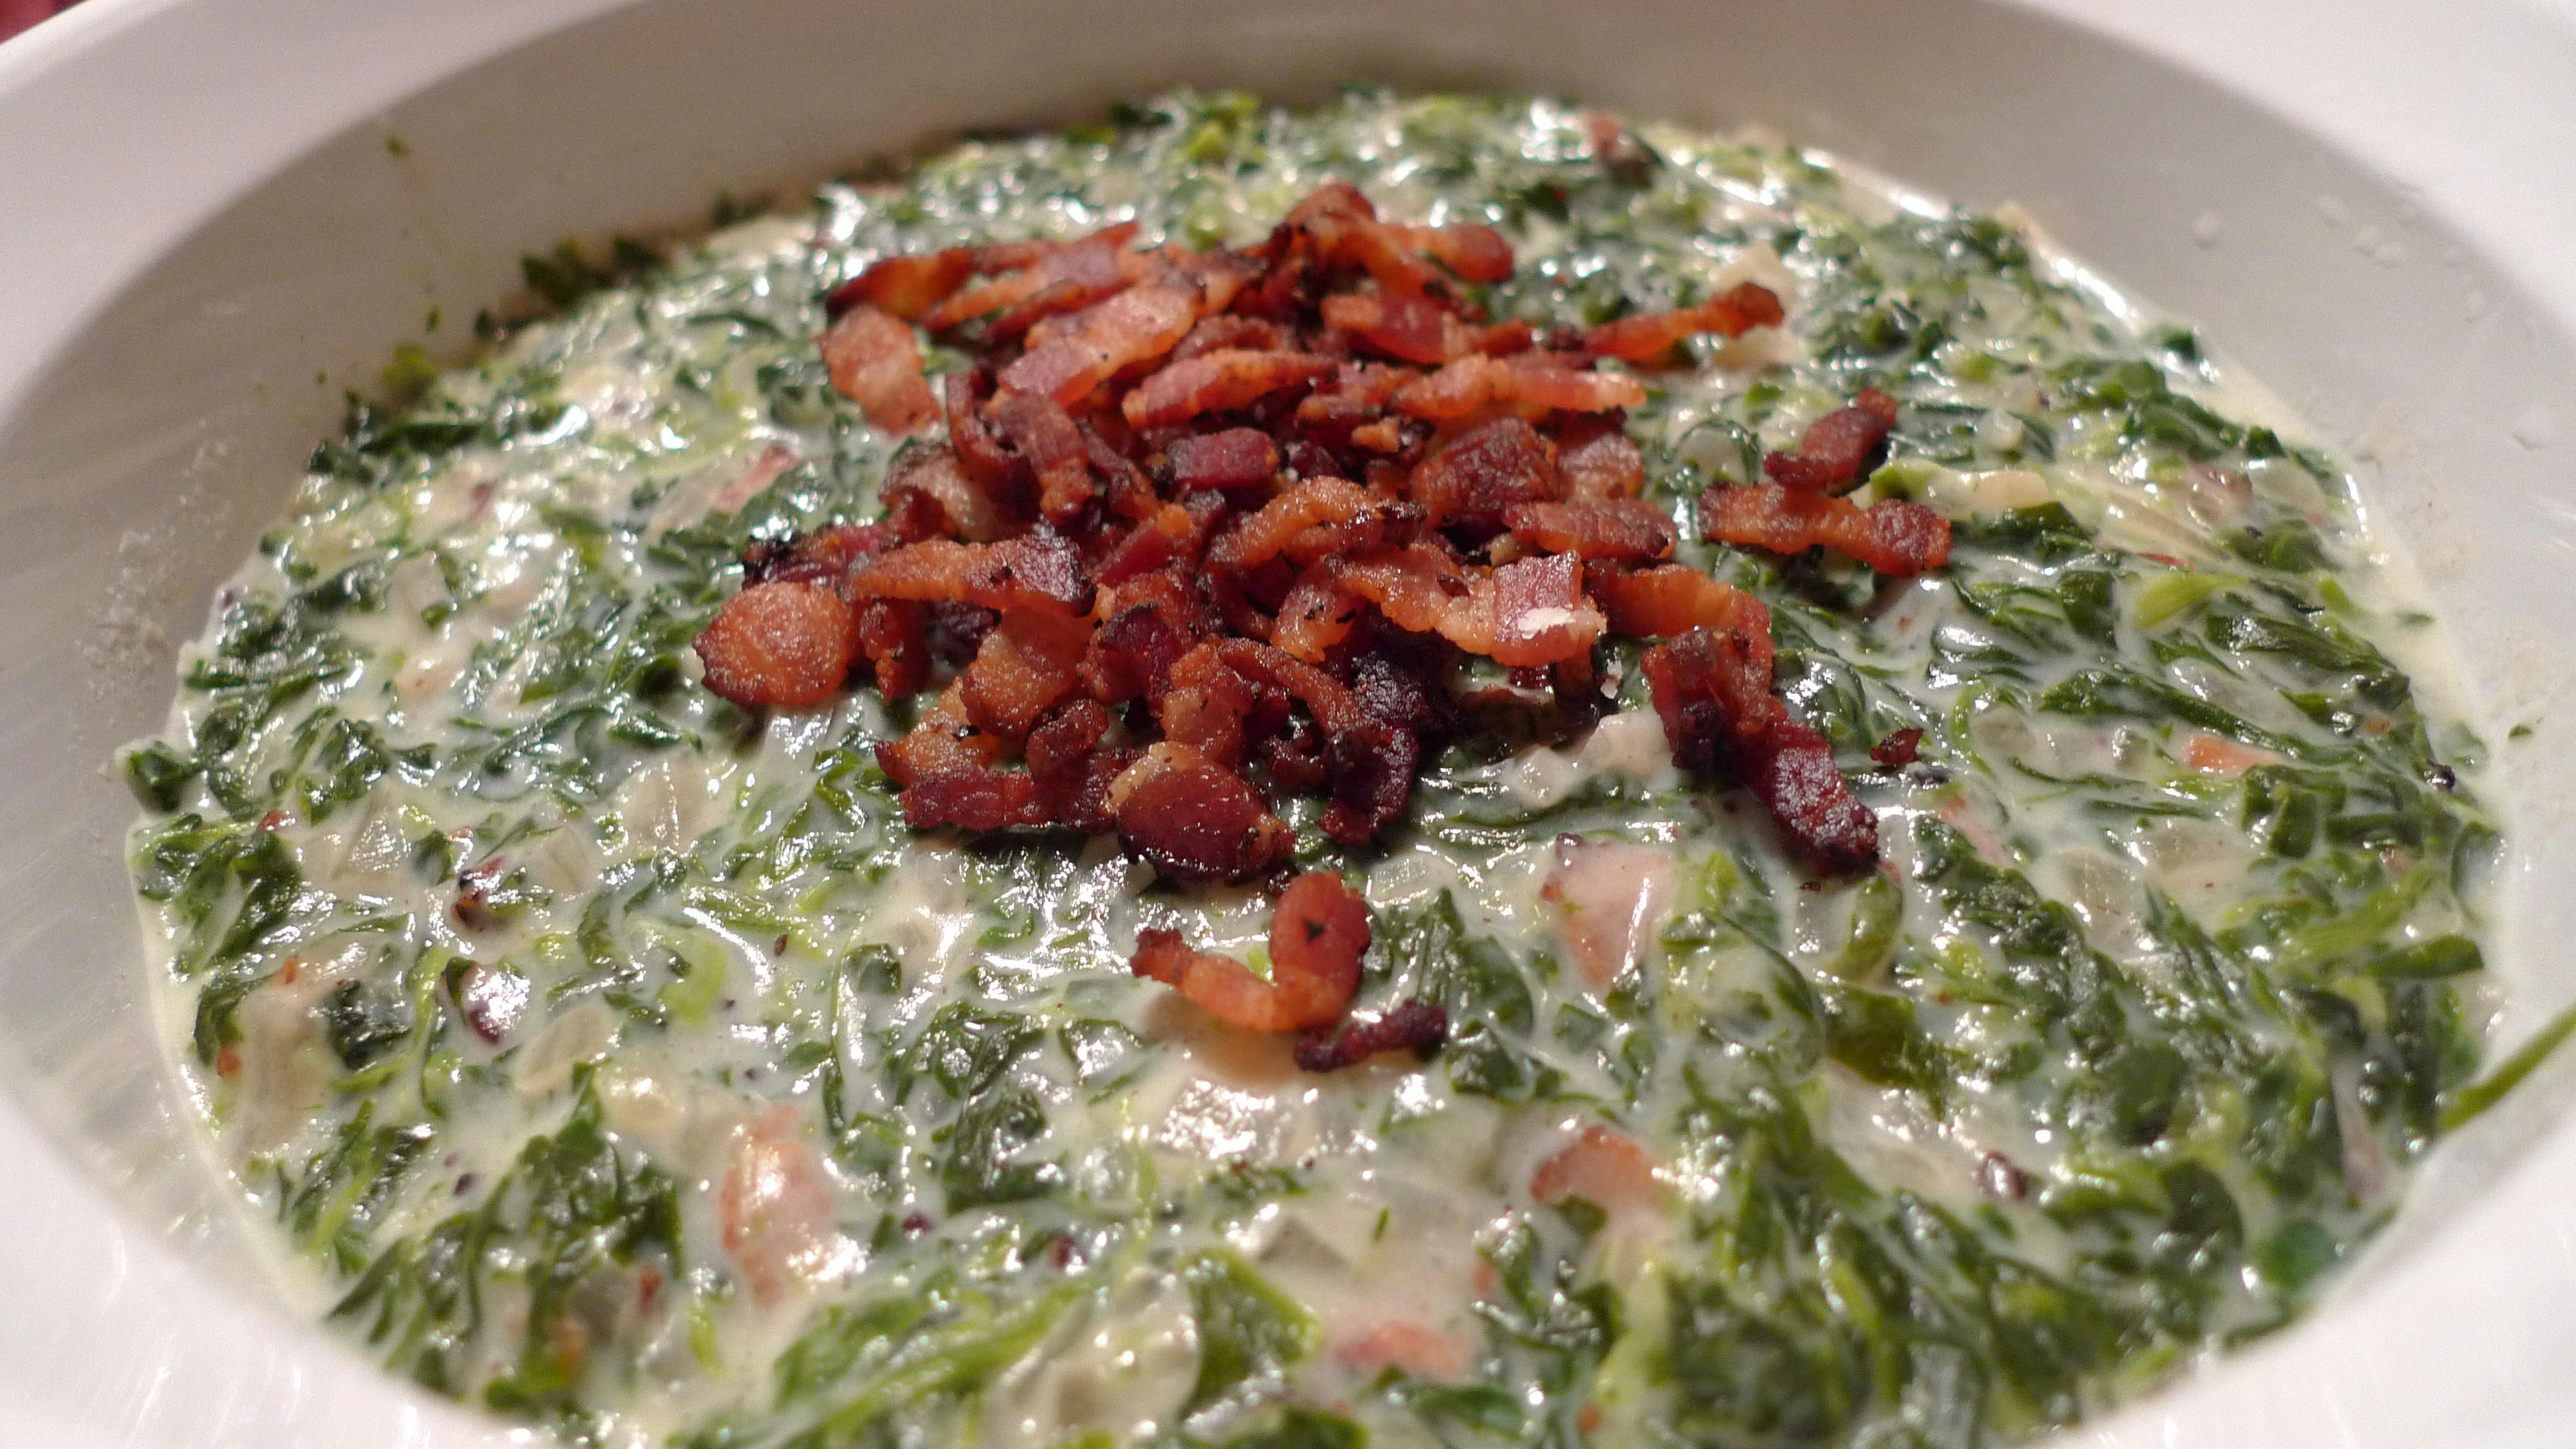 cheese in a bacon pan sauce dressing post image for creamed spinach ...